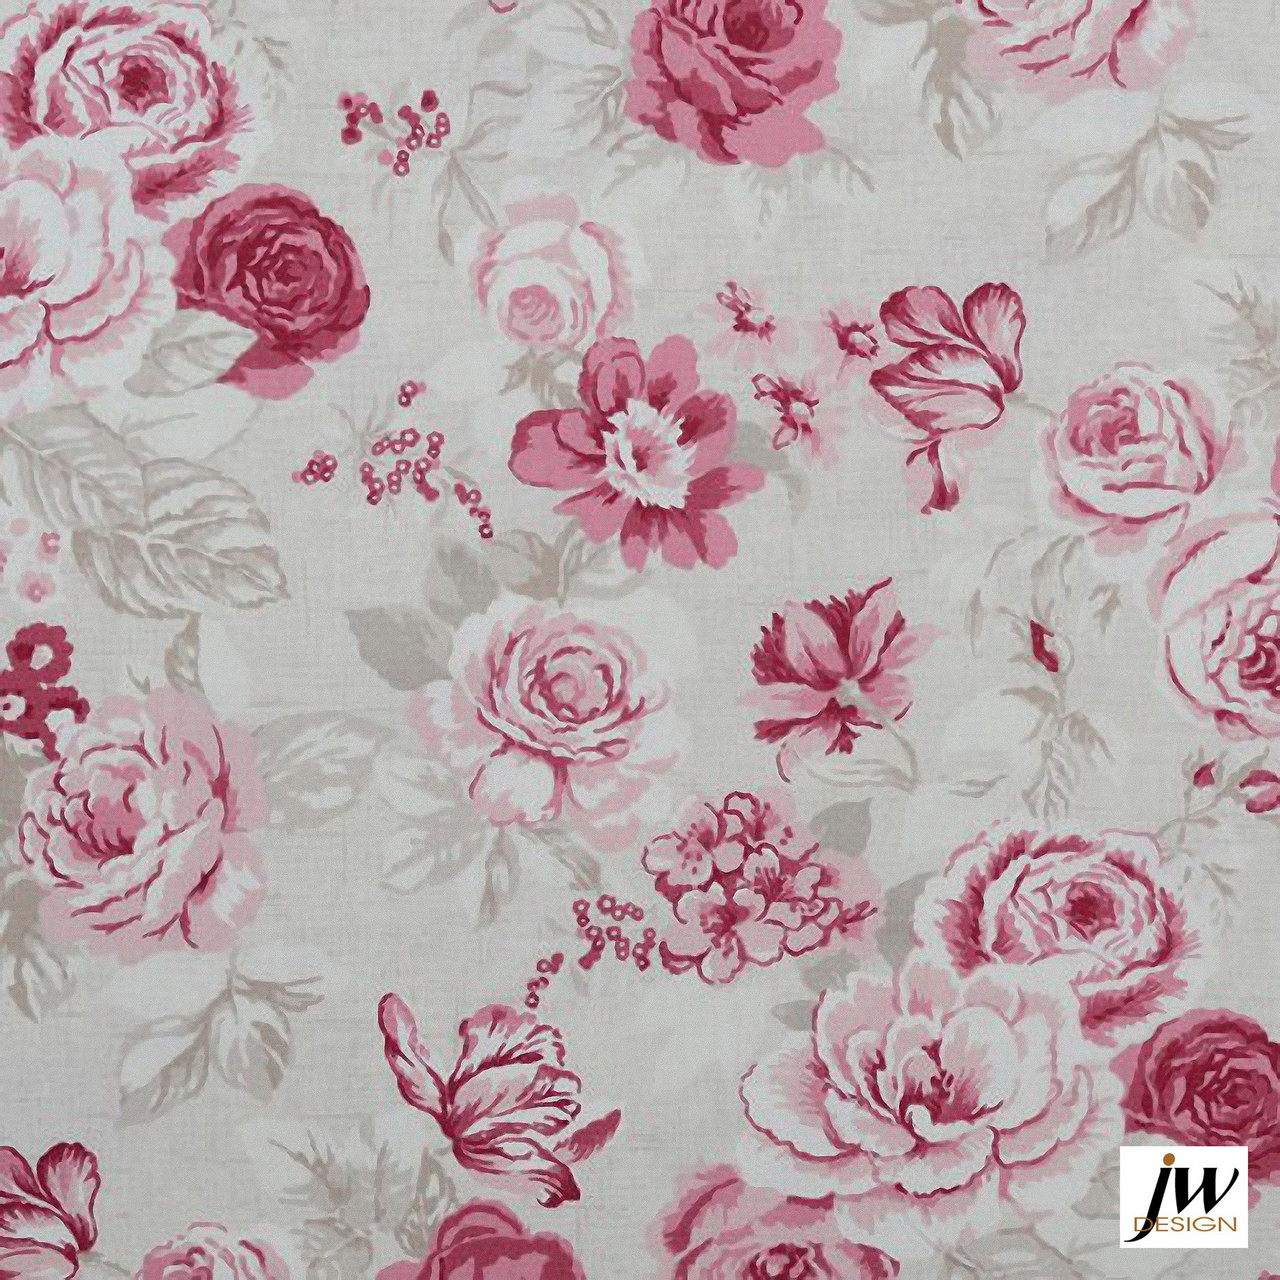 JW Design - Blossom Raspberry Uncoated 137cm  | Curtain & Upholstery fabric - Farmhouse, Floral, Garden, Natural Fibre, Pattern, Pink, Purple, Traditional, Uncoated, Print